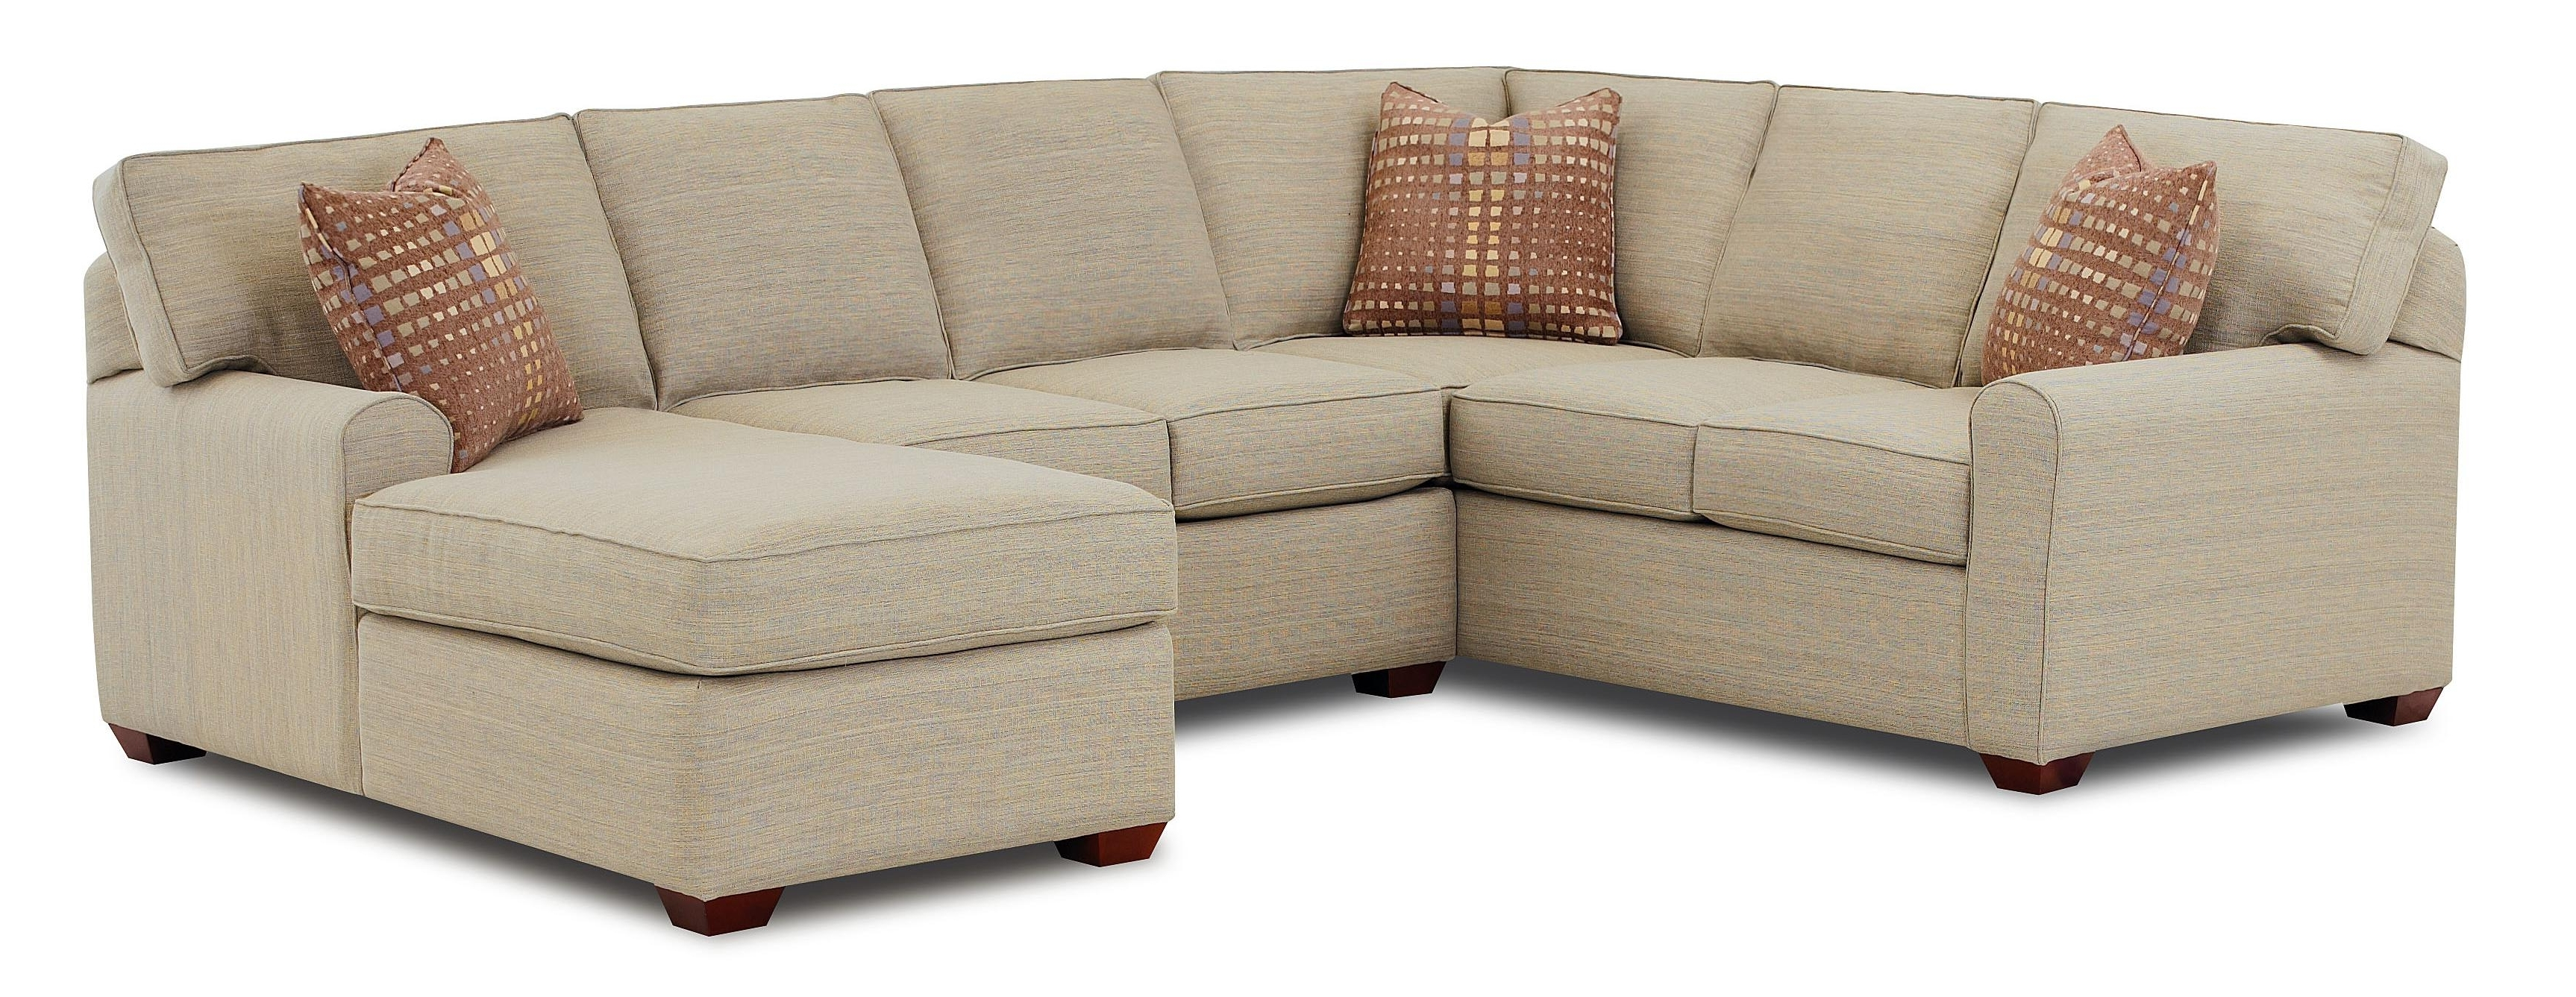 Well Liked Chaise Sofa Sectionals Throughout Furniture: Chaise Sofa Sectional Chaise Sectional (View 15 of 15)